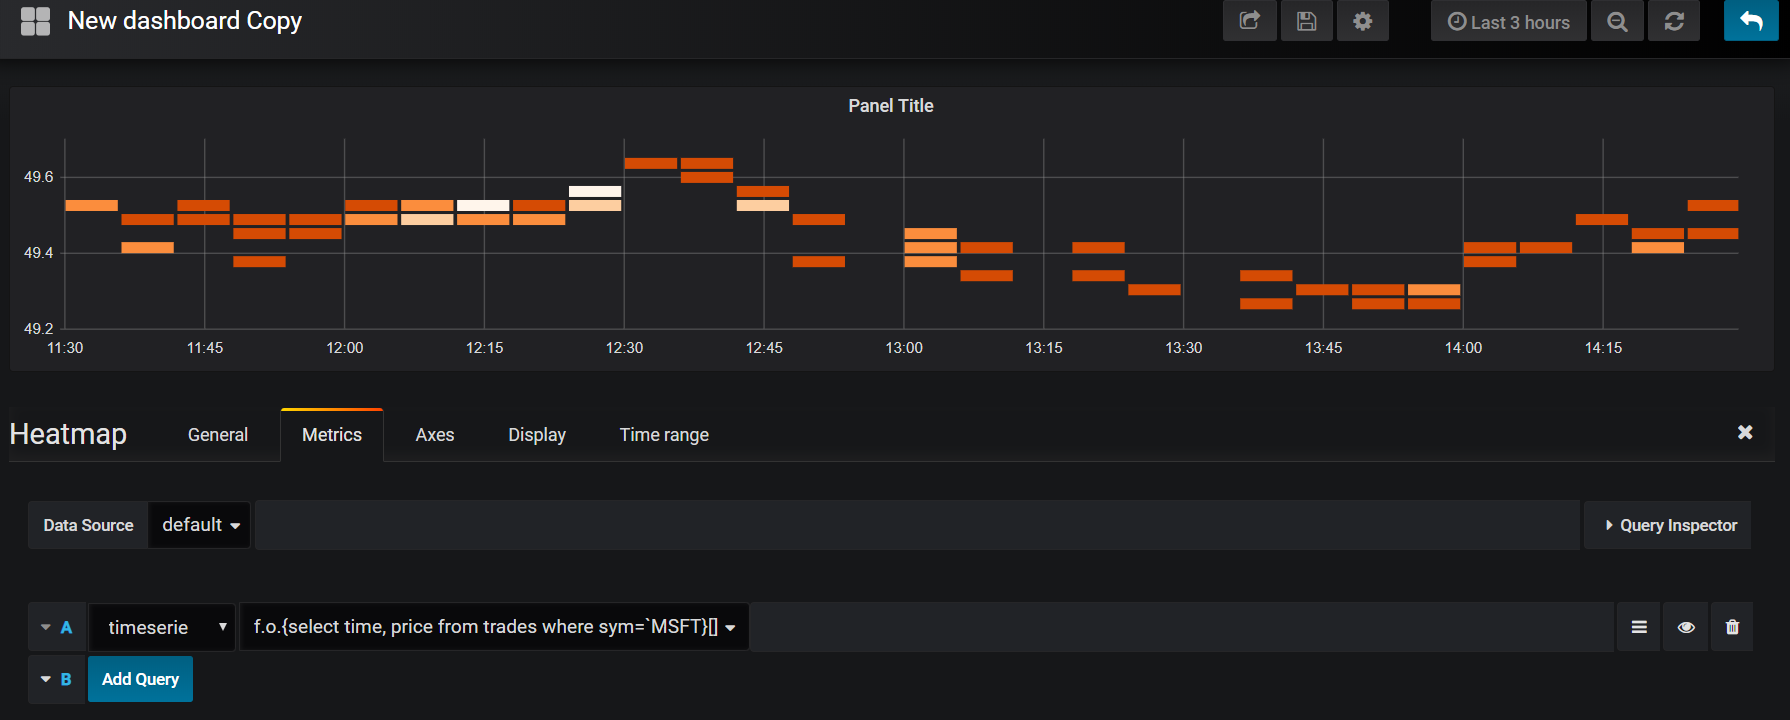 Grafana heatmap panel showing result of calling an anonymous function. The graph shows the frequency of MSFT trades at a range of prices during the day.